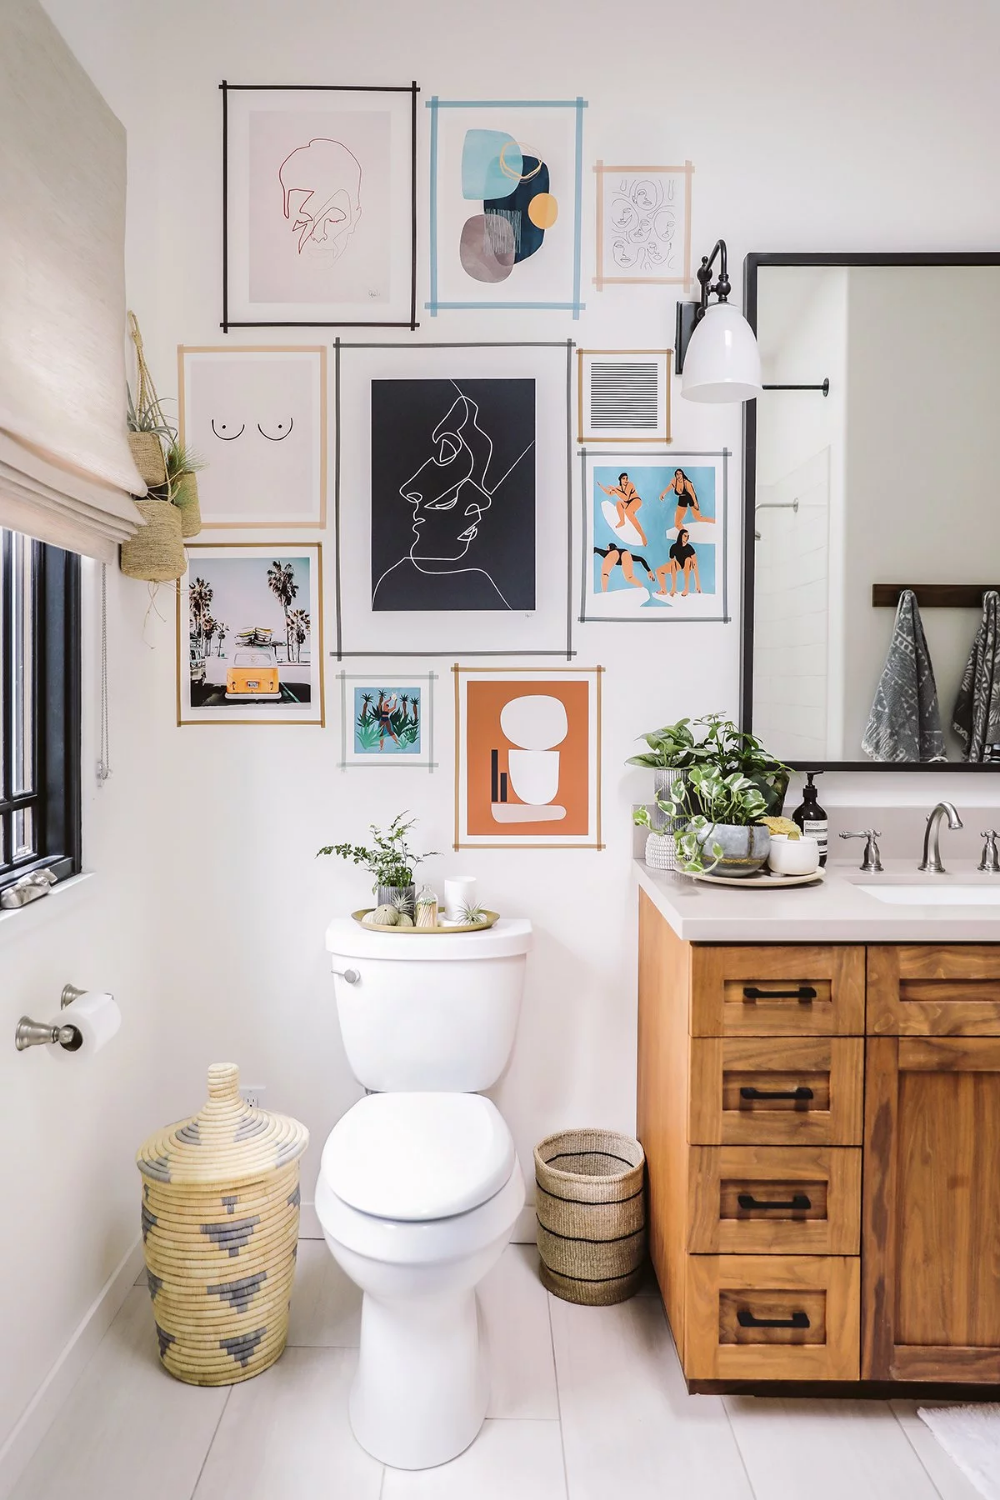 Diy Washi Tape Gallery Wall Honestly Wtf Gallery Wall Layout Bathroom Decor Apartment Eclectic Bathroom